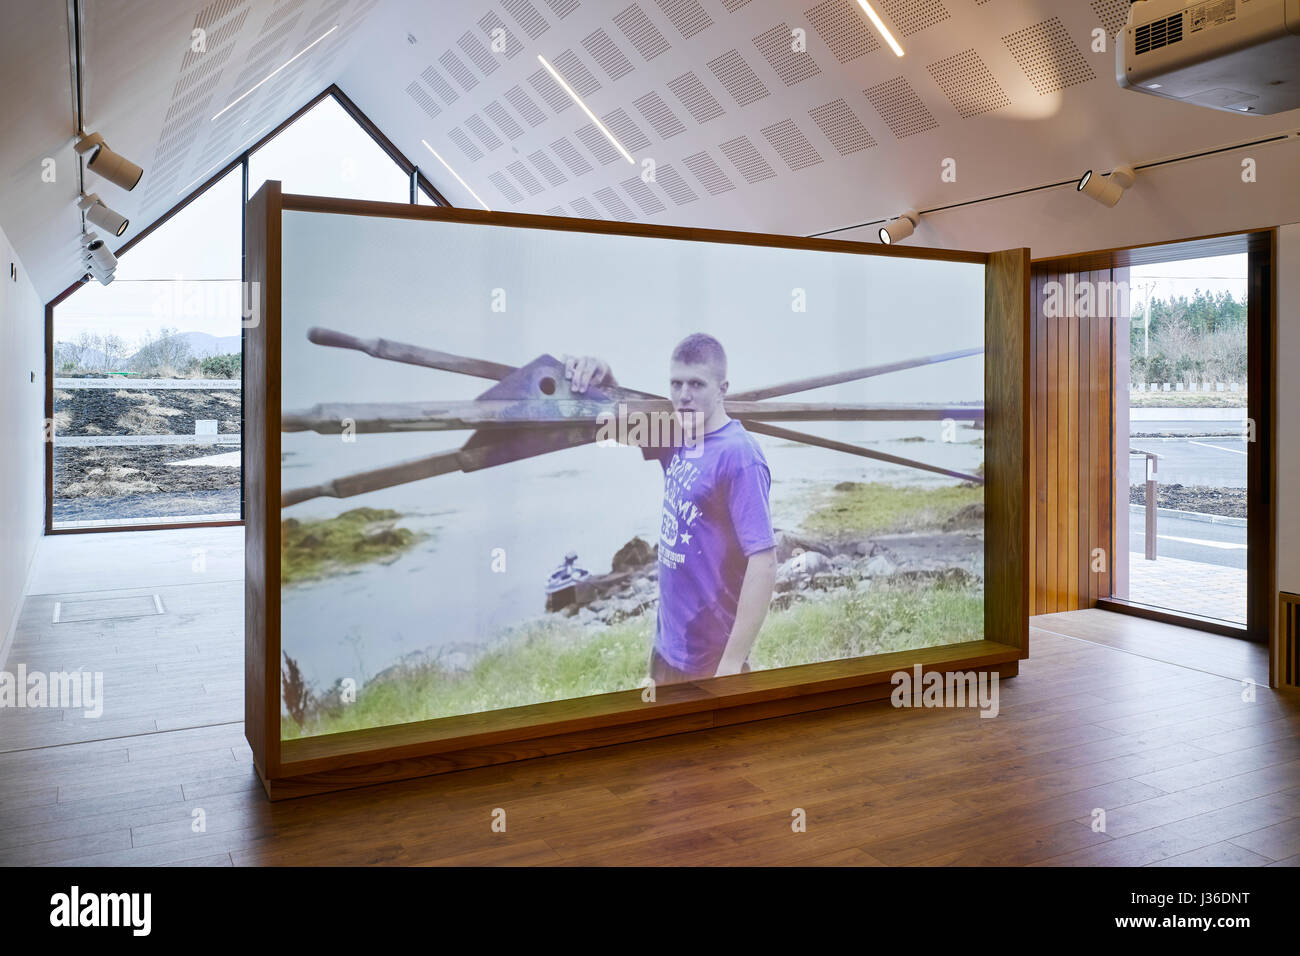 Interior view of exhibition space showing video on gaeltacht life. Pearse Visitor and Cultural Centre, Connemara, - Stock Image